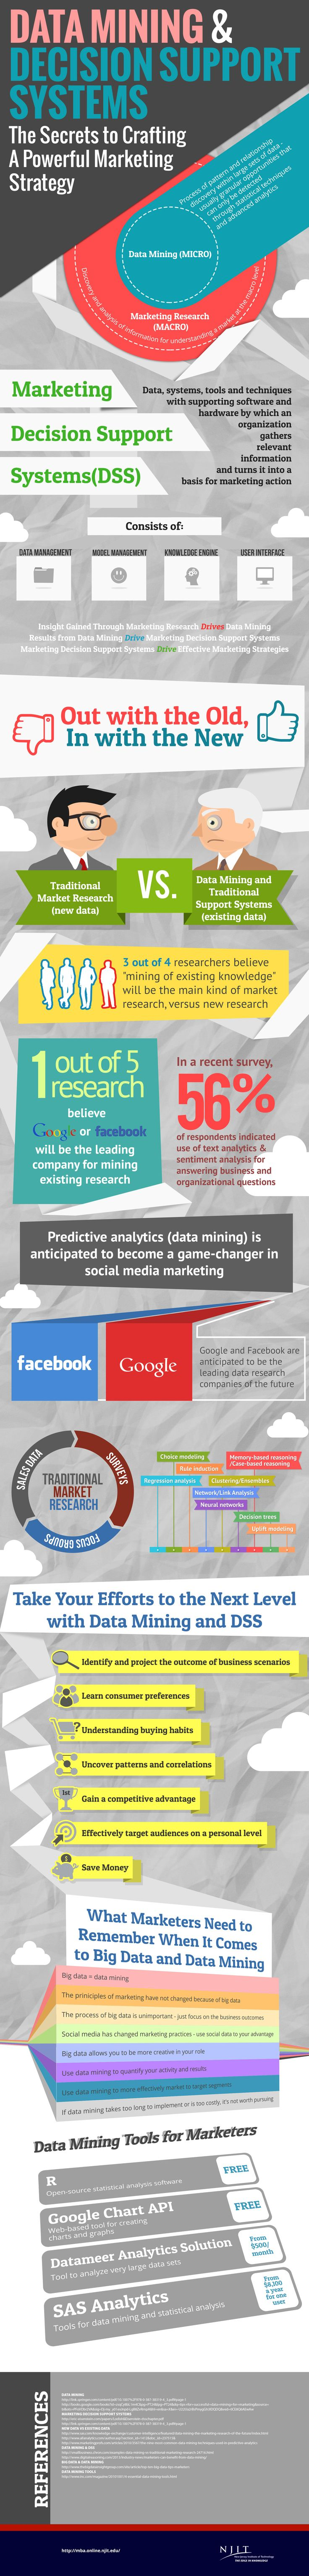 Data Mining & Decision Support: Secrets to Crafting a Powerful Marketing Strategy